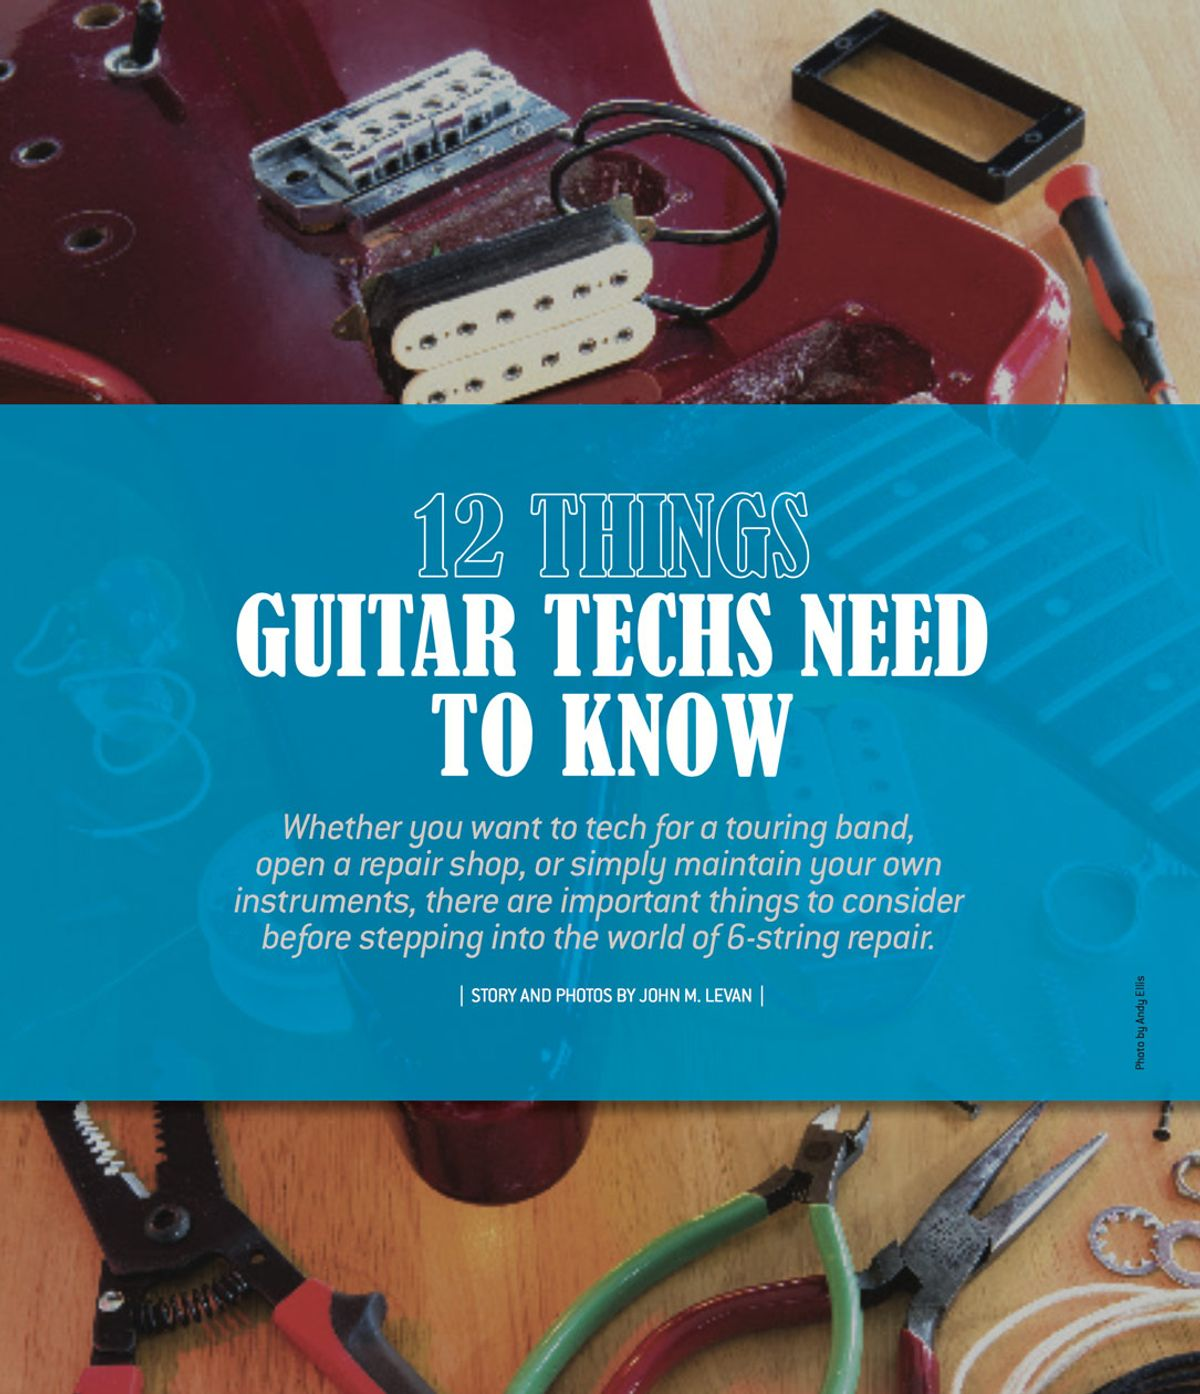 12 Things Guitar Techs Need to Know